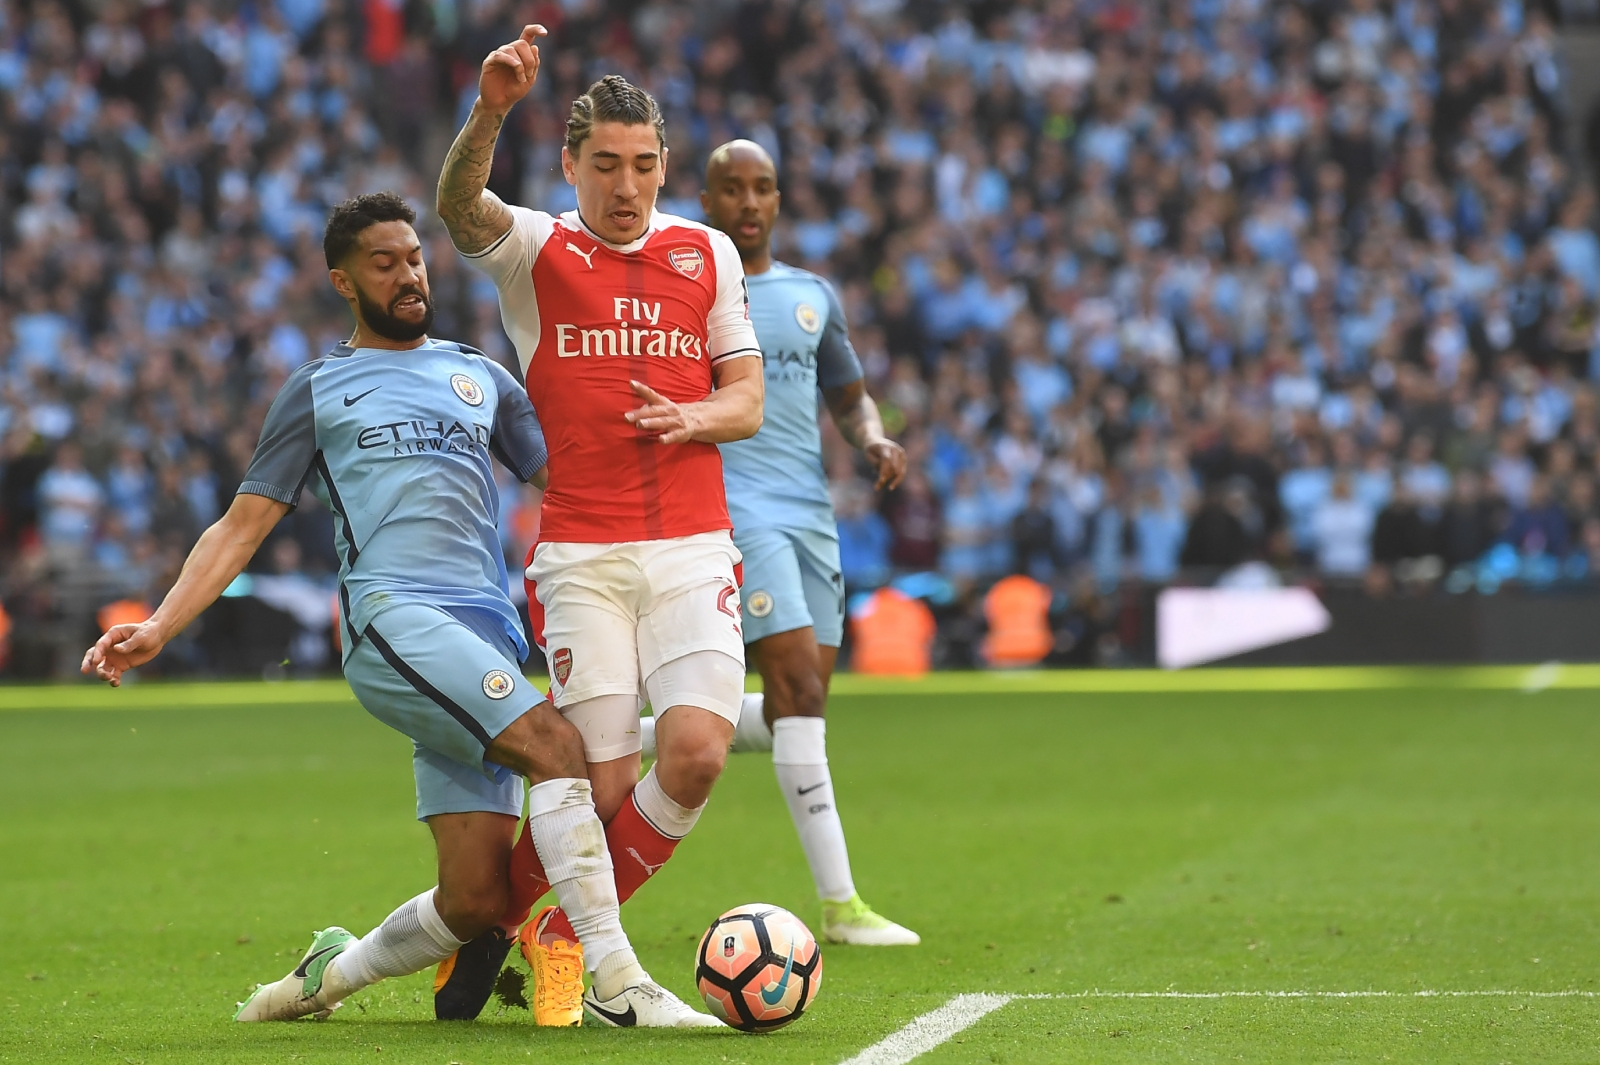 Pep: City 'controlled' game against 'long ball' Arsenal